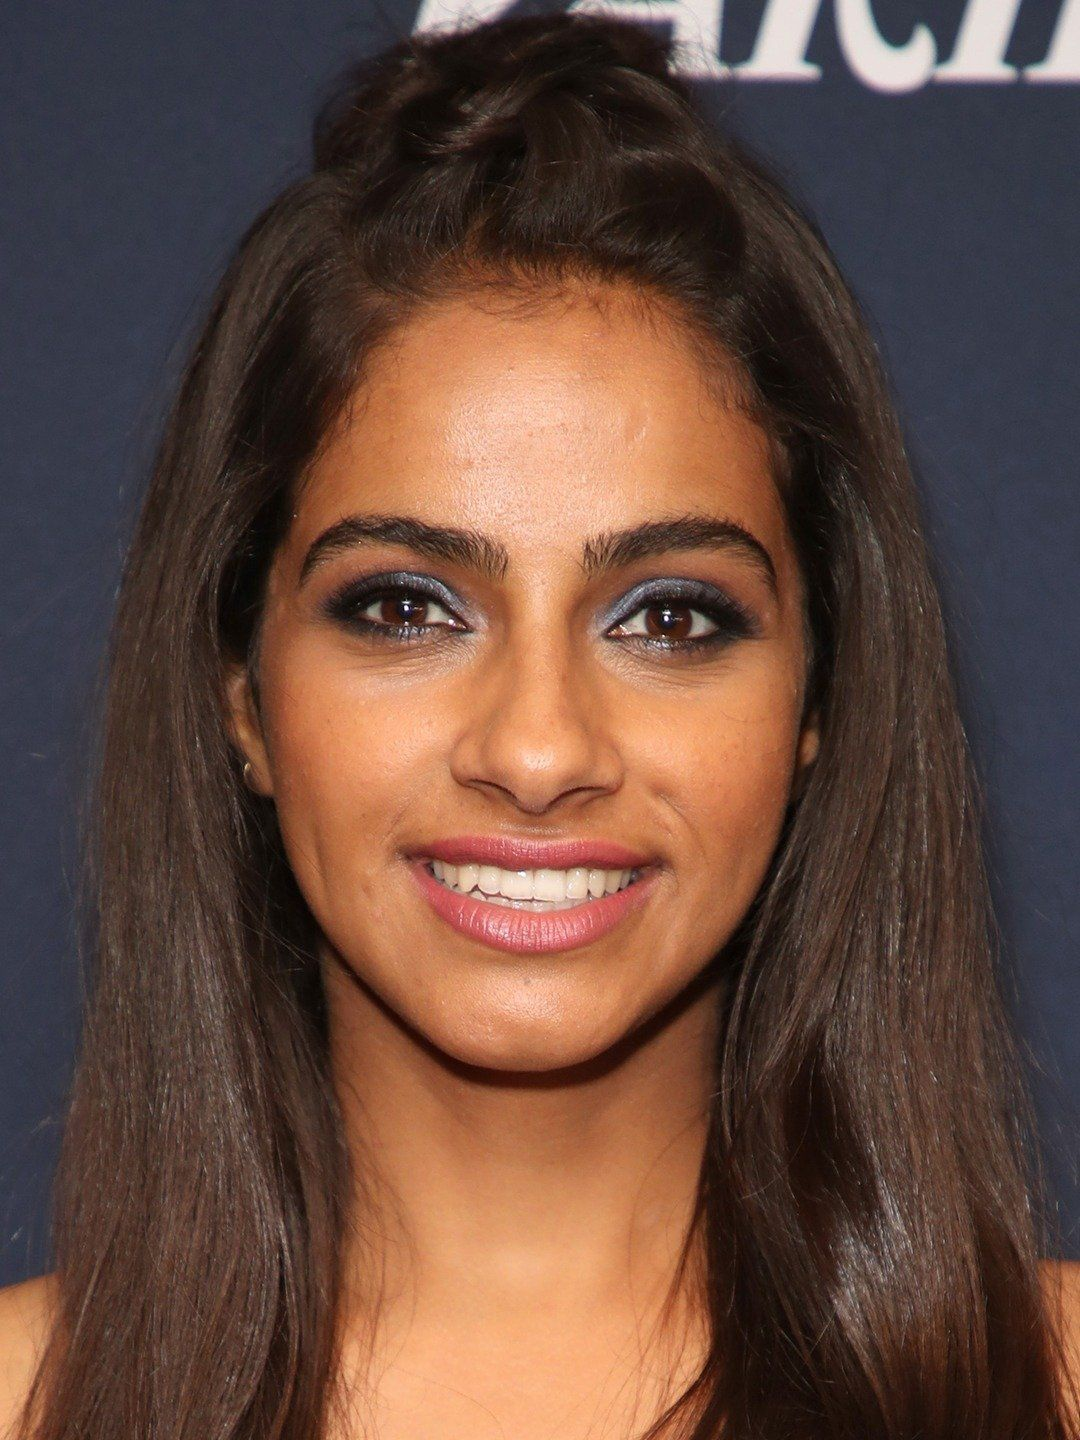 Snapchat Mandip Gill nudes (35 foto and video), Sexy, Fappening, Twitter, butt 2015